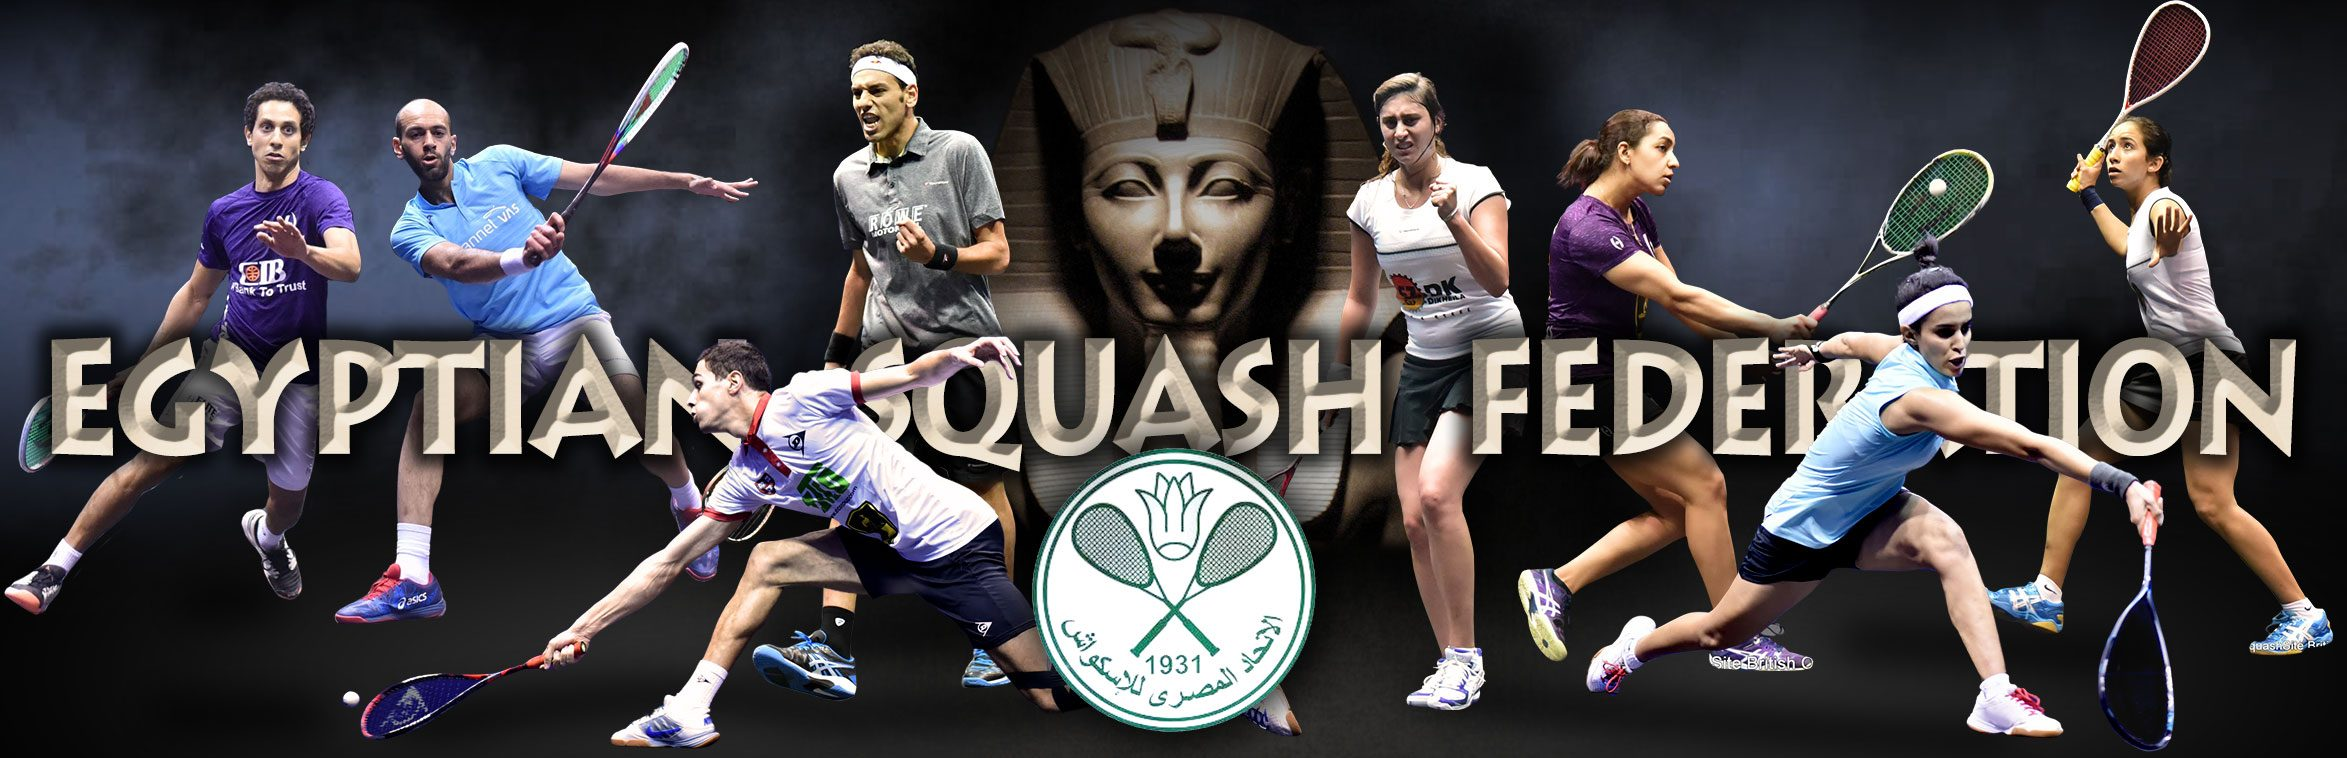 Egyptian Squash Federation